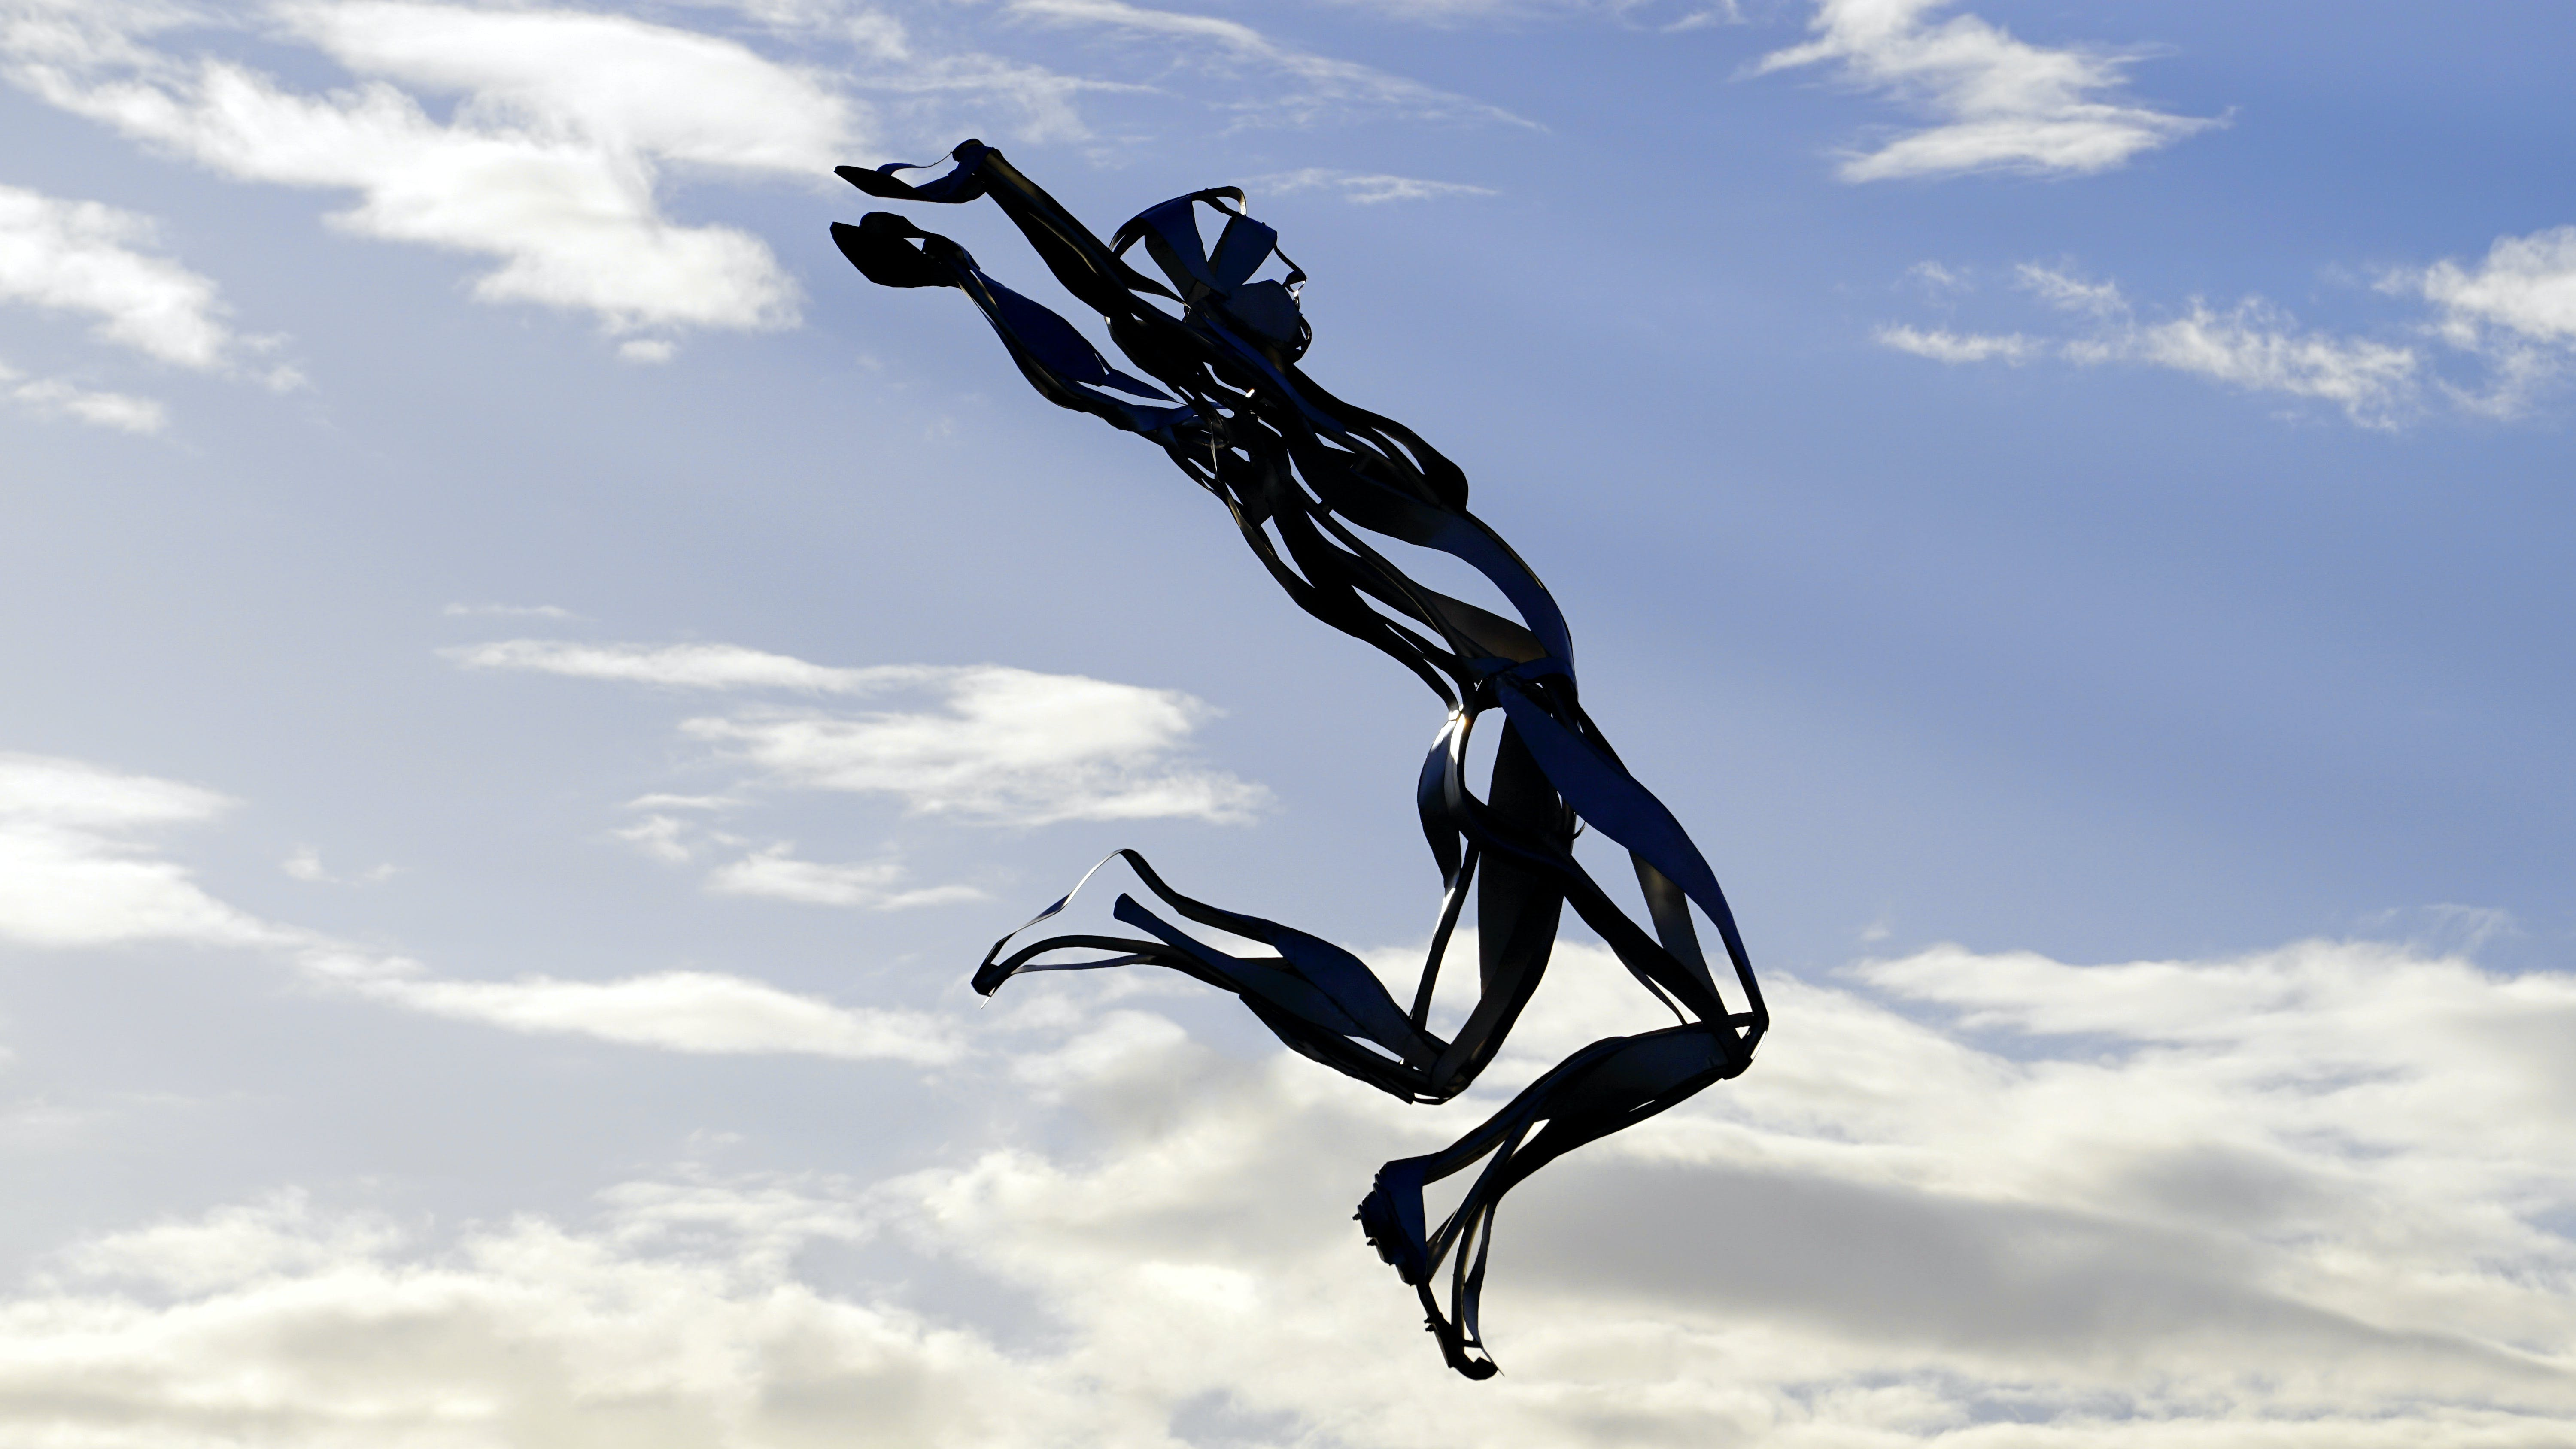 Black and Clear Human Form With Blue Sky and White Clouds Background